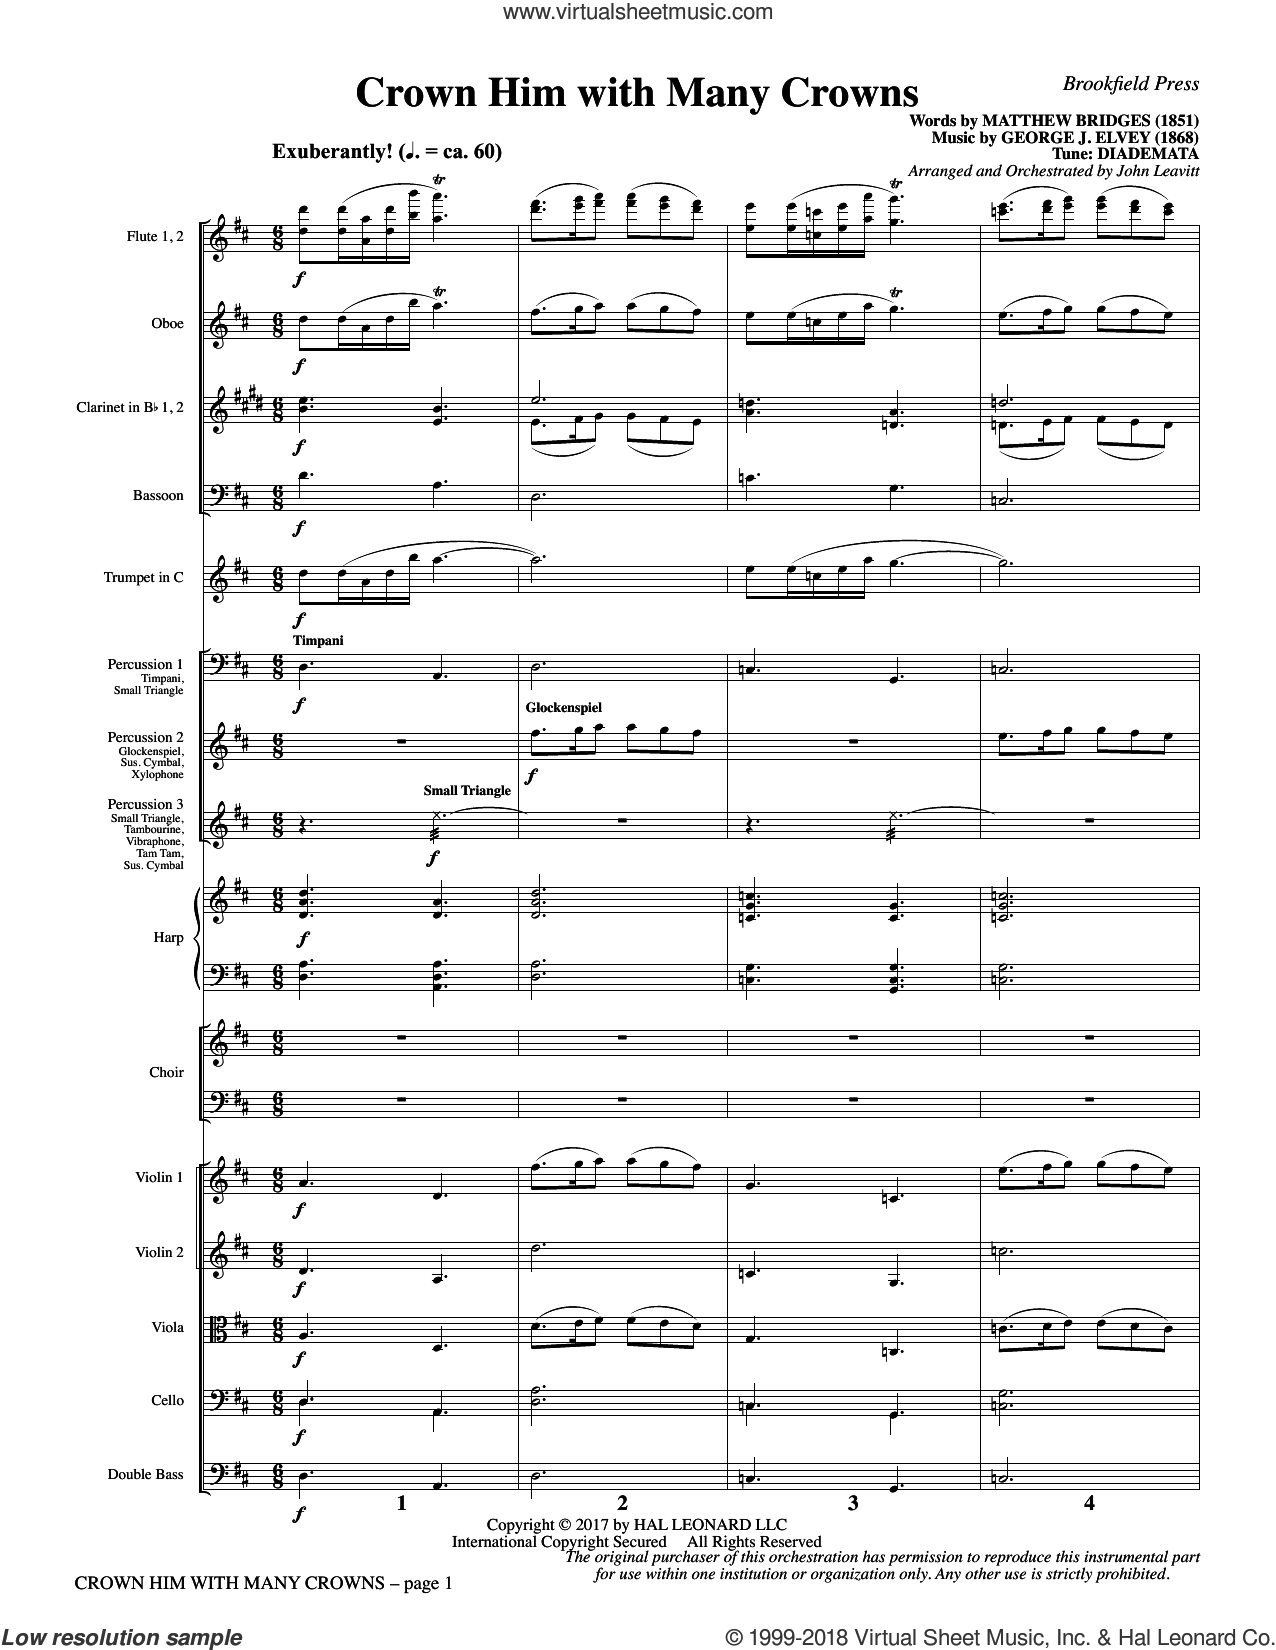 Crown Him with Many Crowns (COMPLETE) sheet music for orchestra/band by John Leavitt, George Job Elvey, Godfrey Thring and Matthew Bridges, intermediate skill level